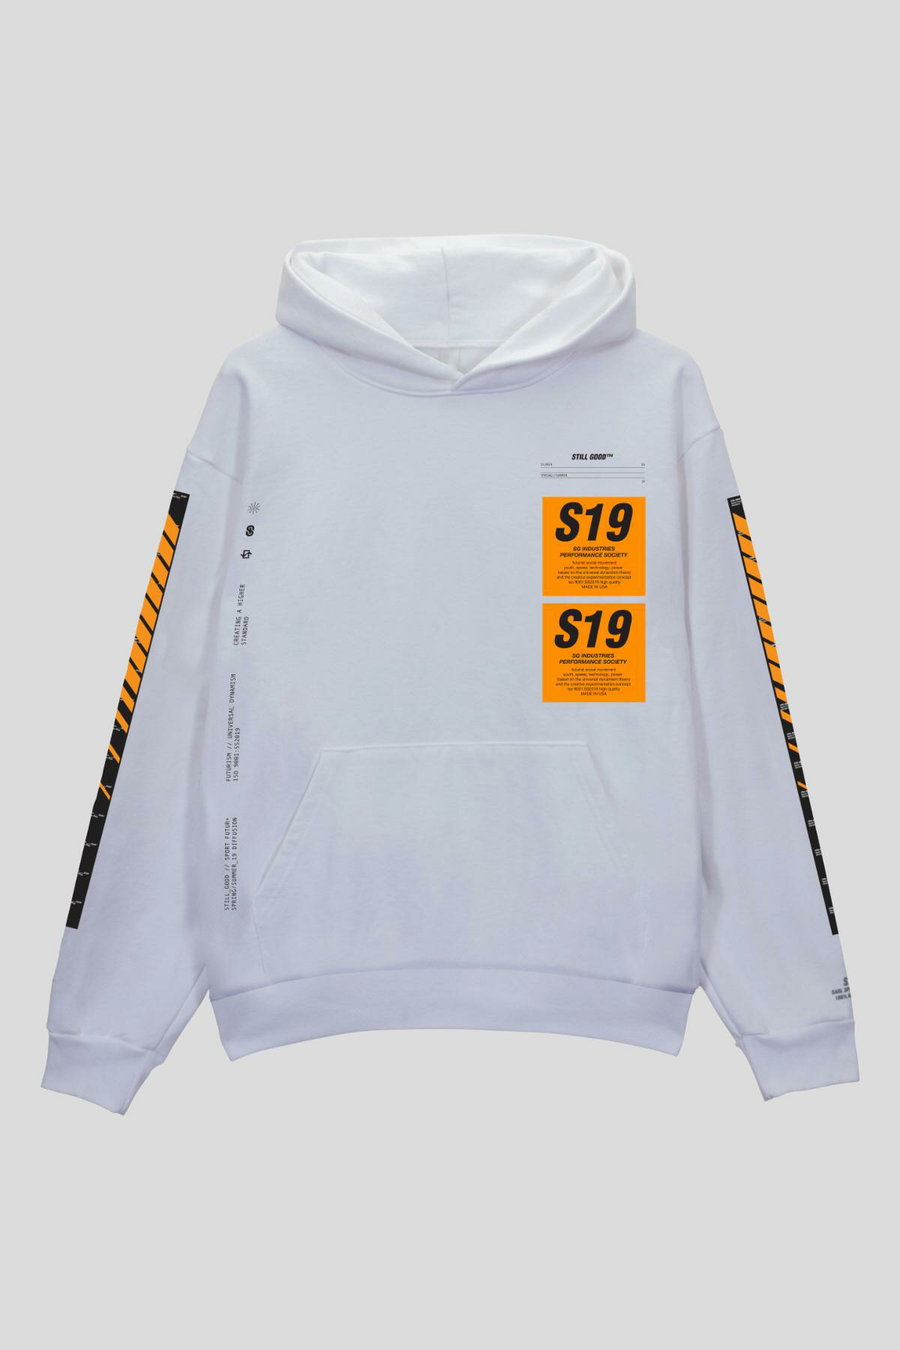 Patch Hoodie White / XS | Still Good